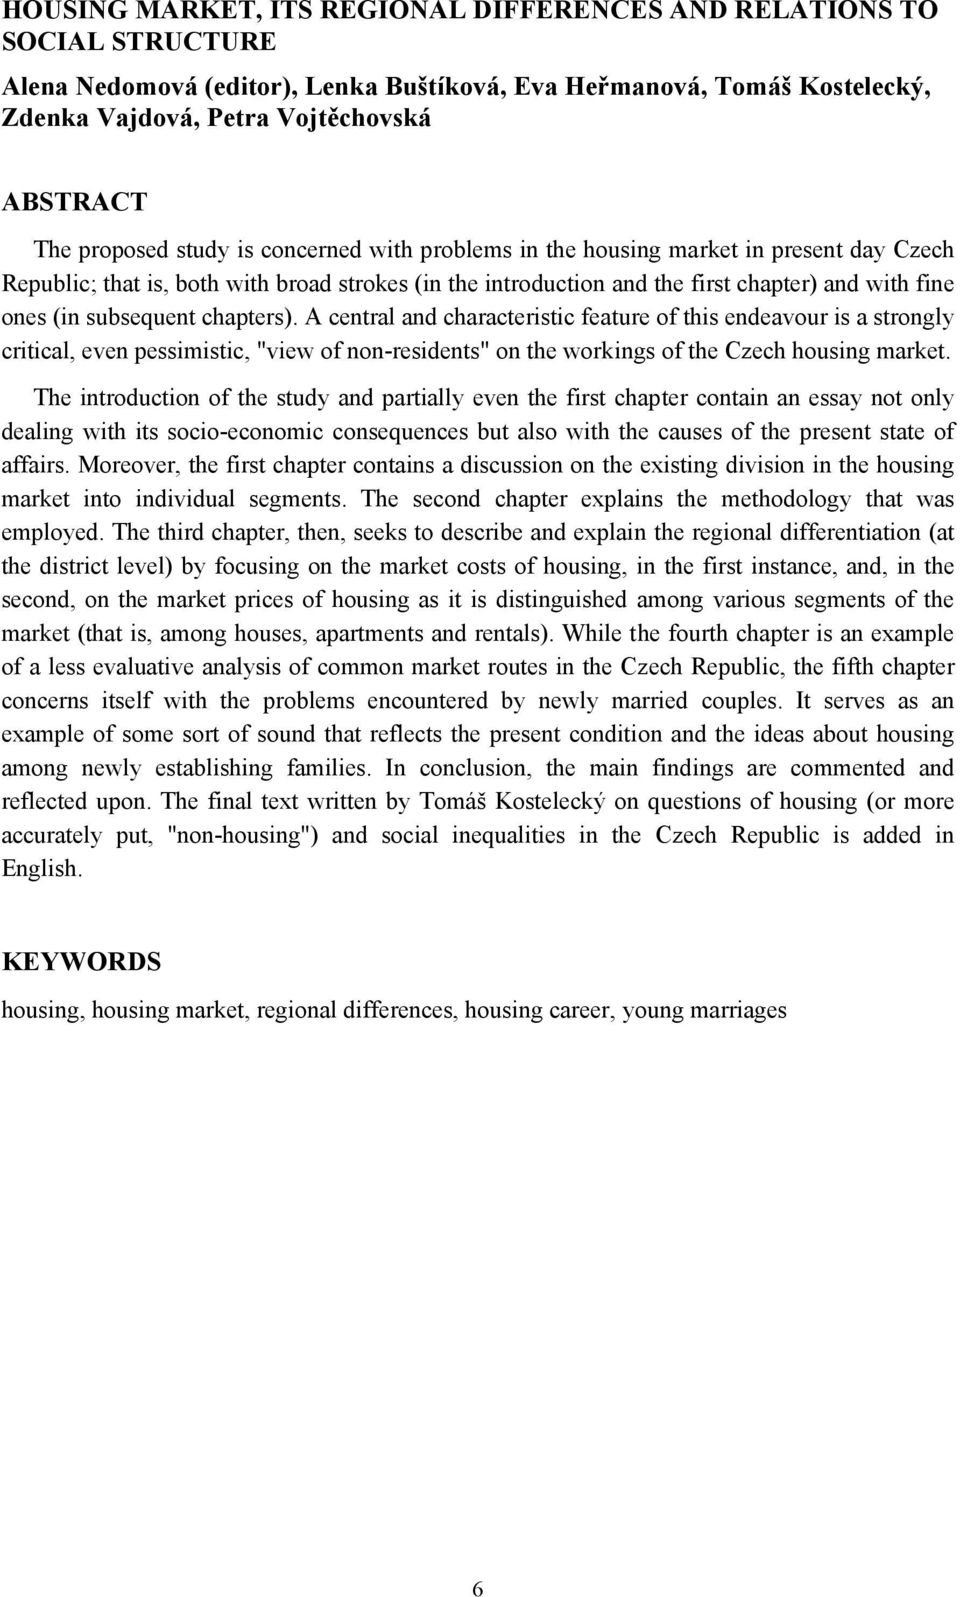 "subsequent chapters). A central and characteristic feature of this endeavour is a strongly critical, even pessimistic, ""view of non-residents"" on the workings of the Czech housing market."